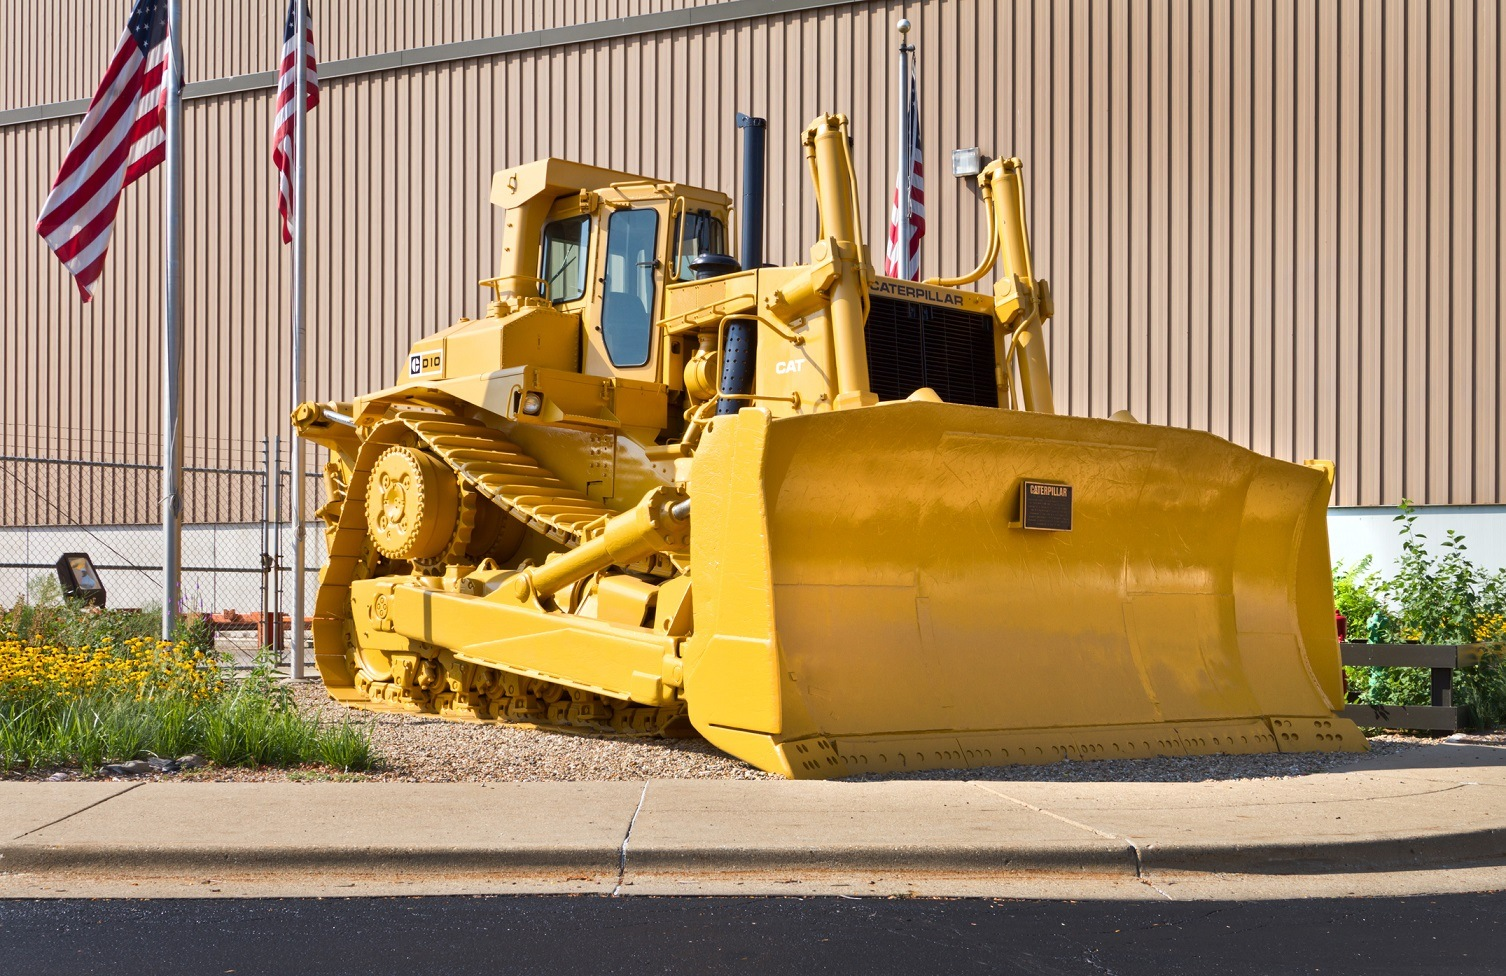 Caterpillar Inc. Peoria IL